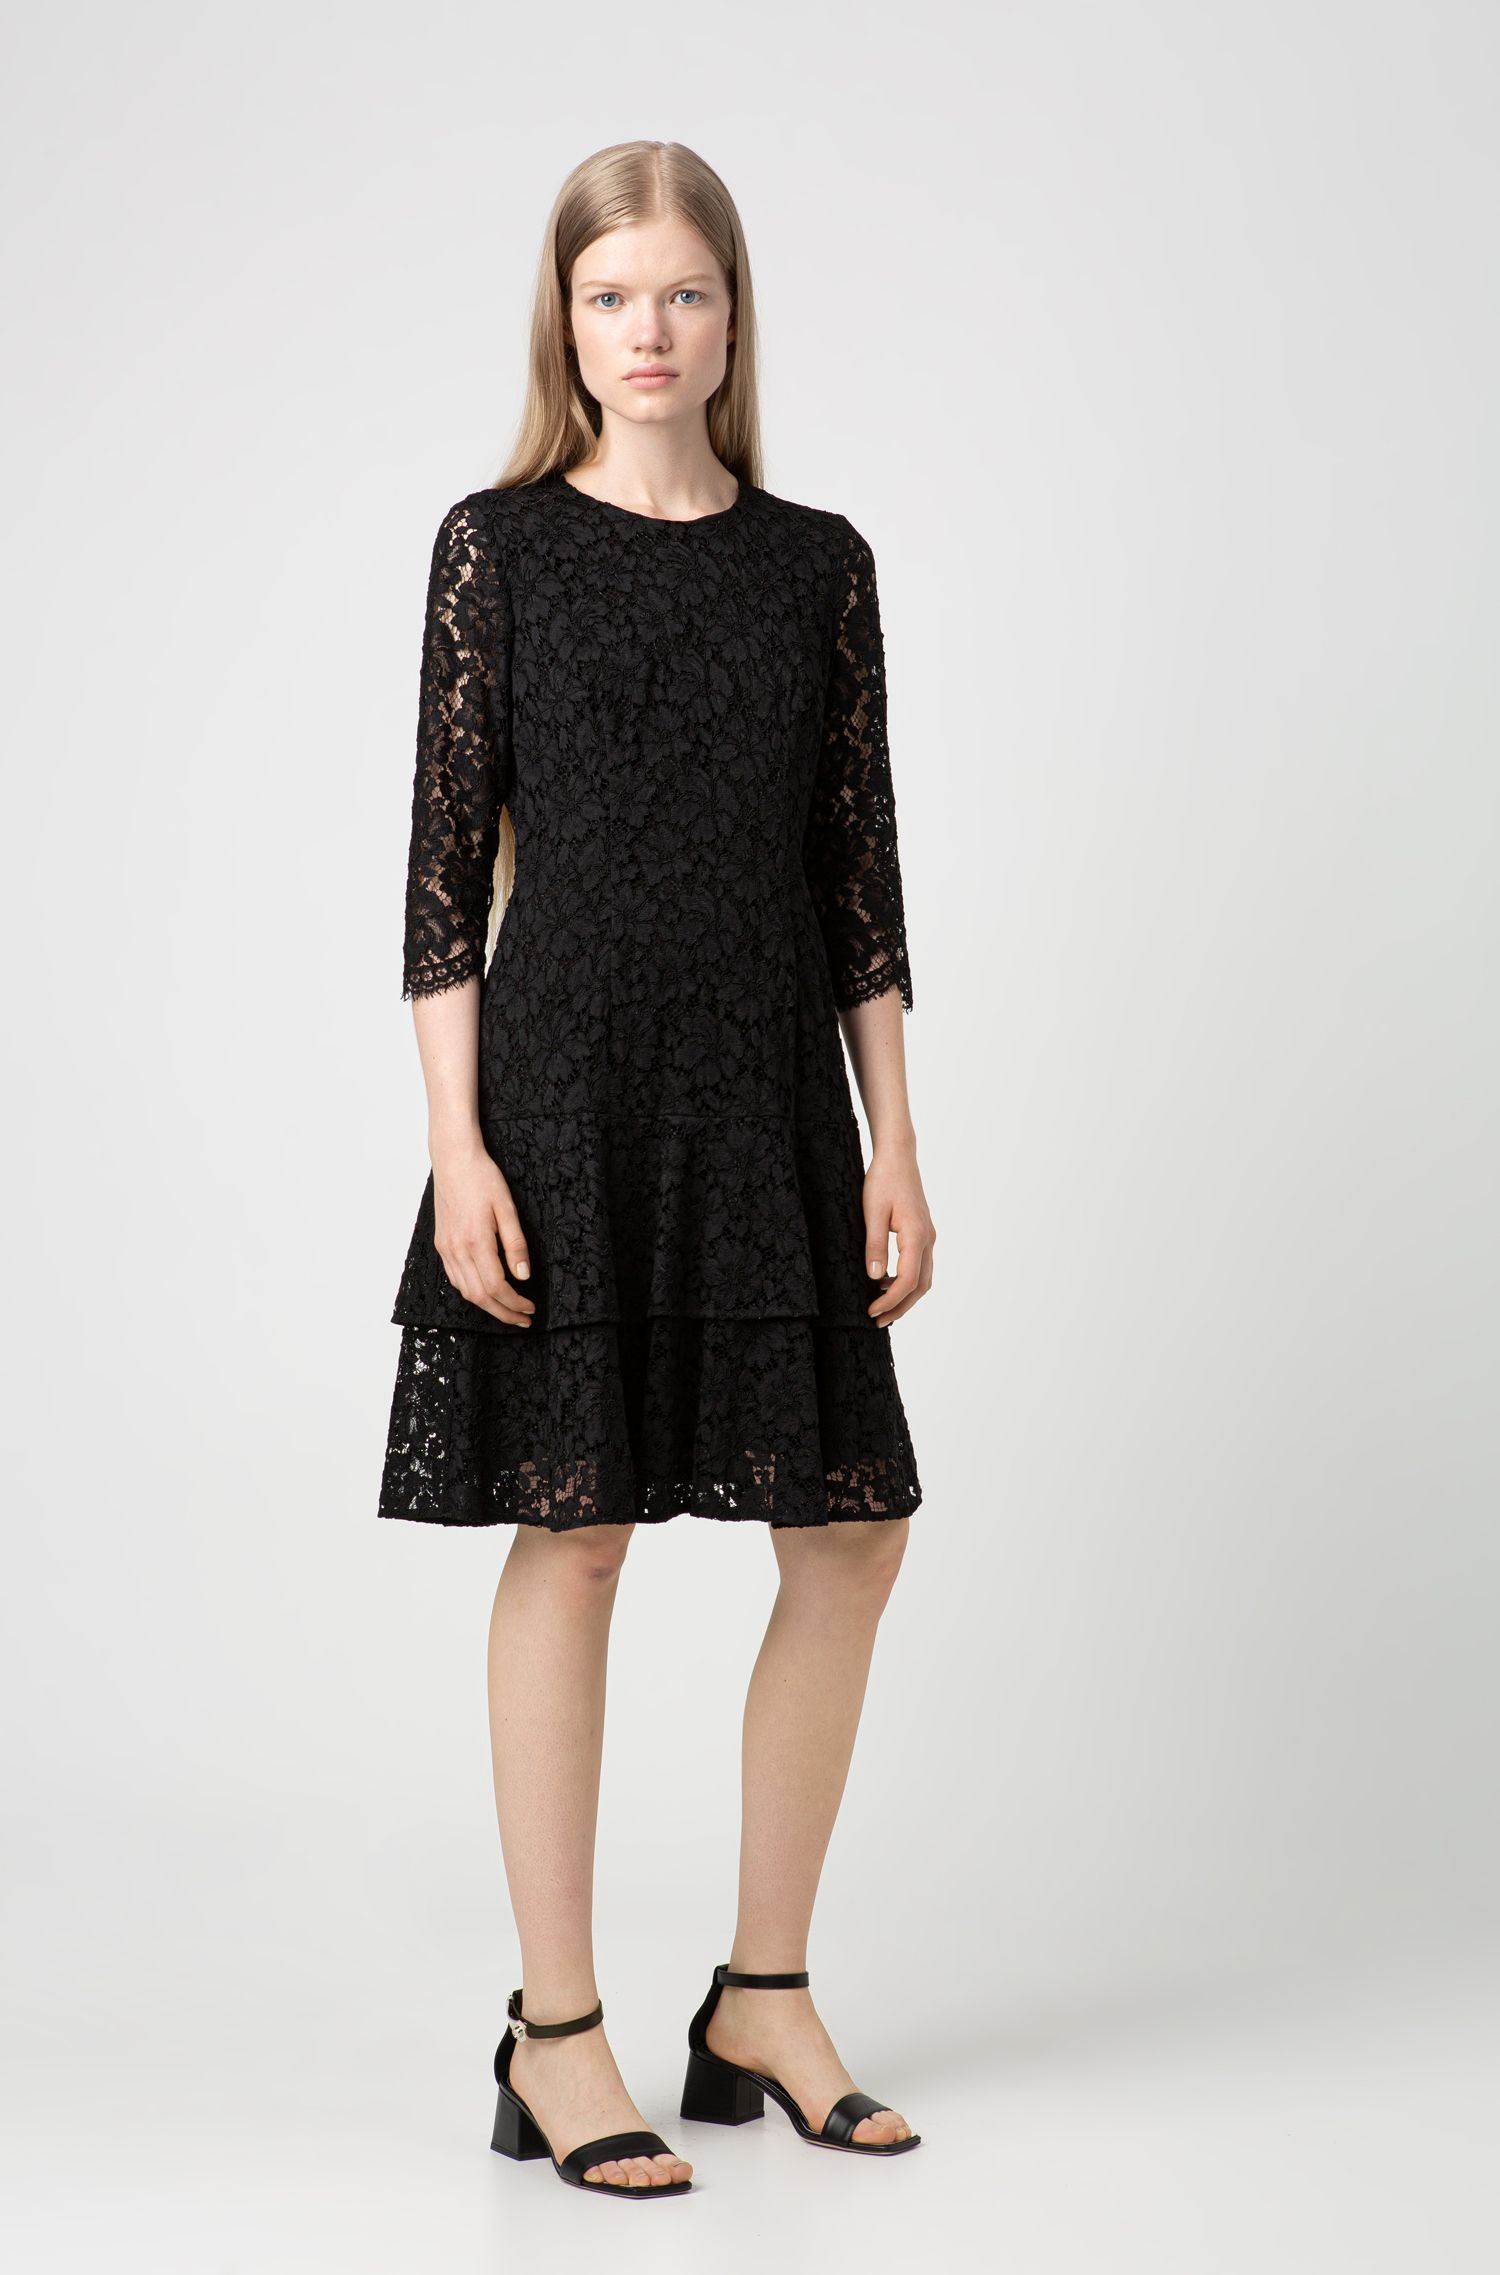 Regular-fit dress in lace with volant skirt, Patterned